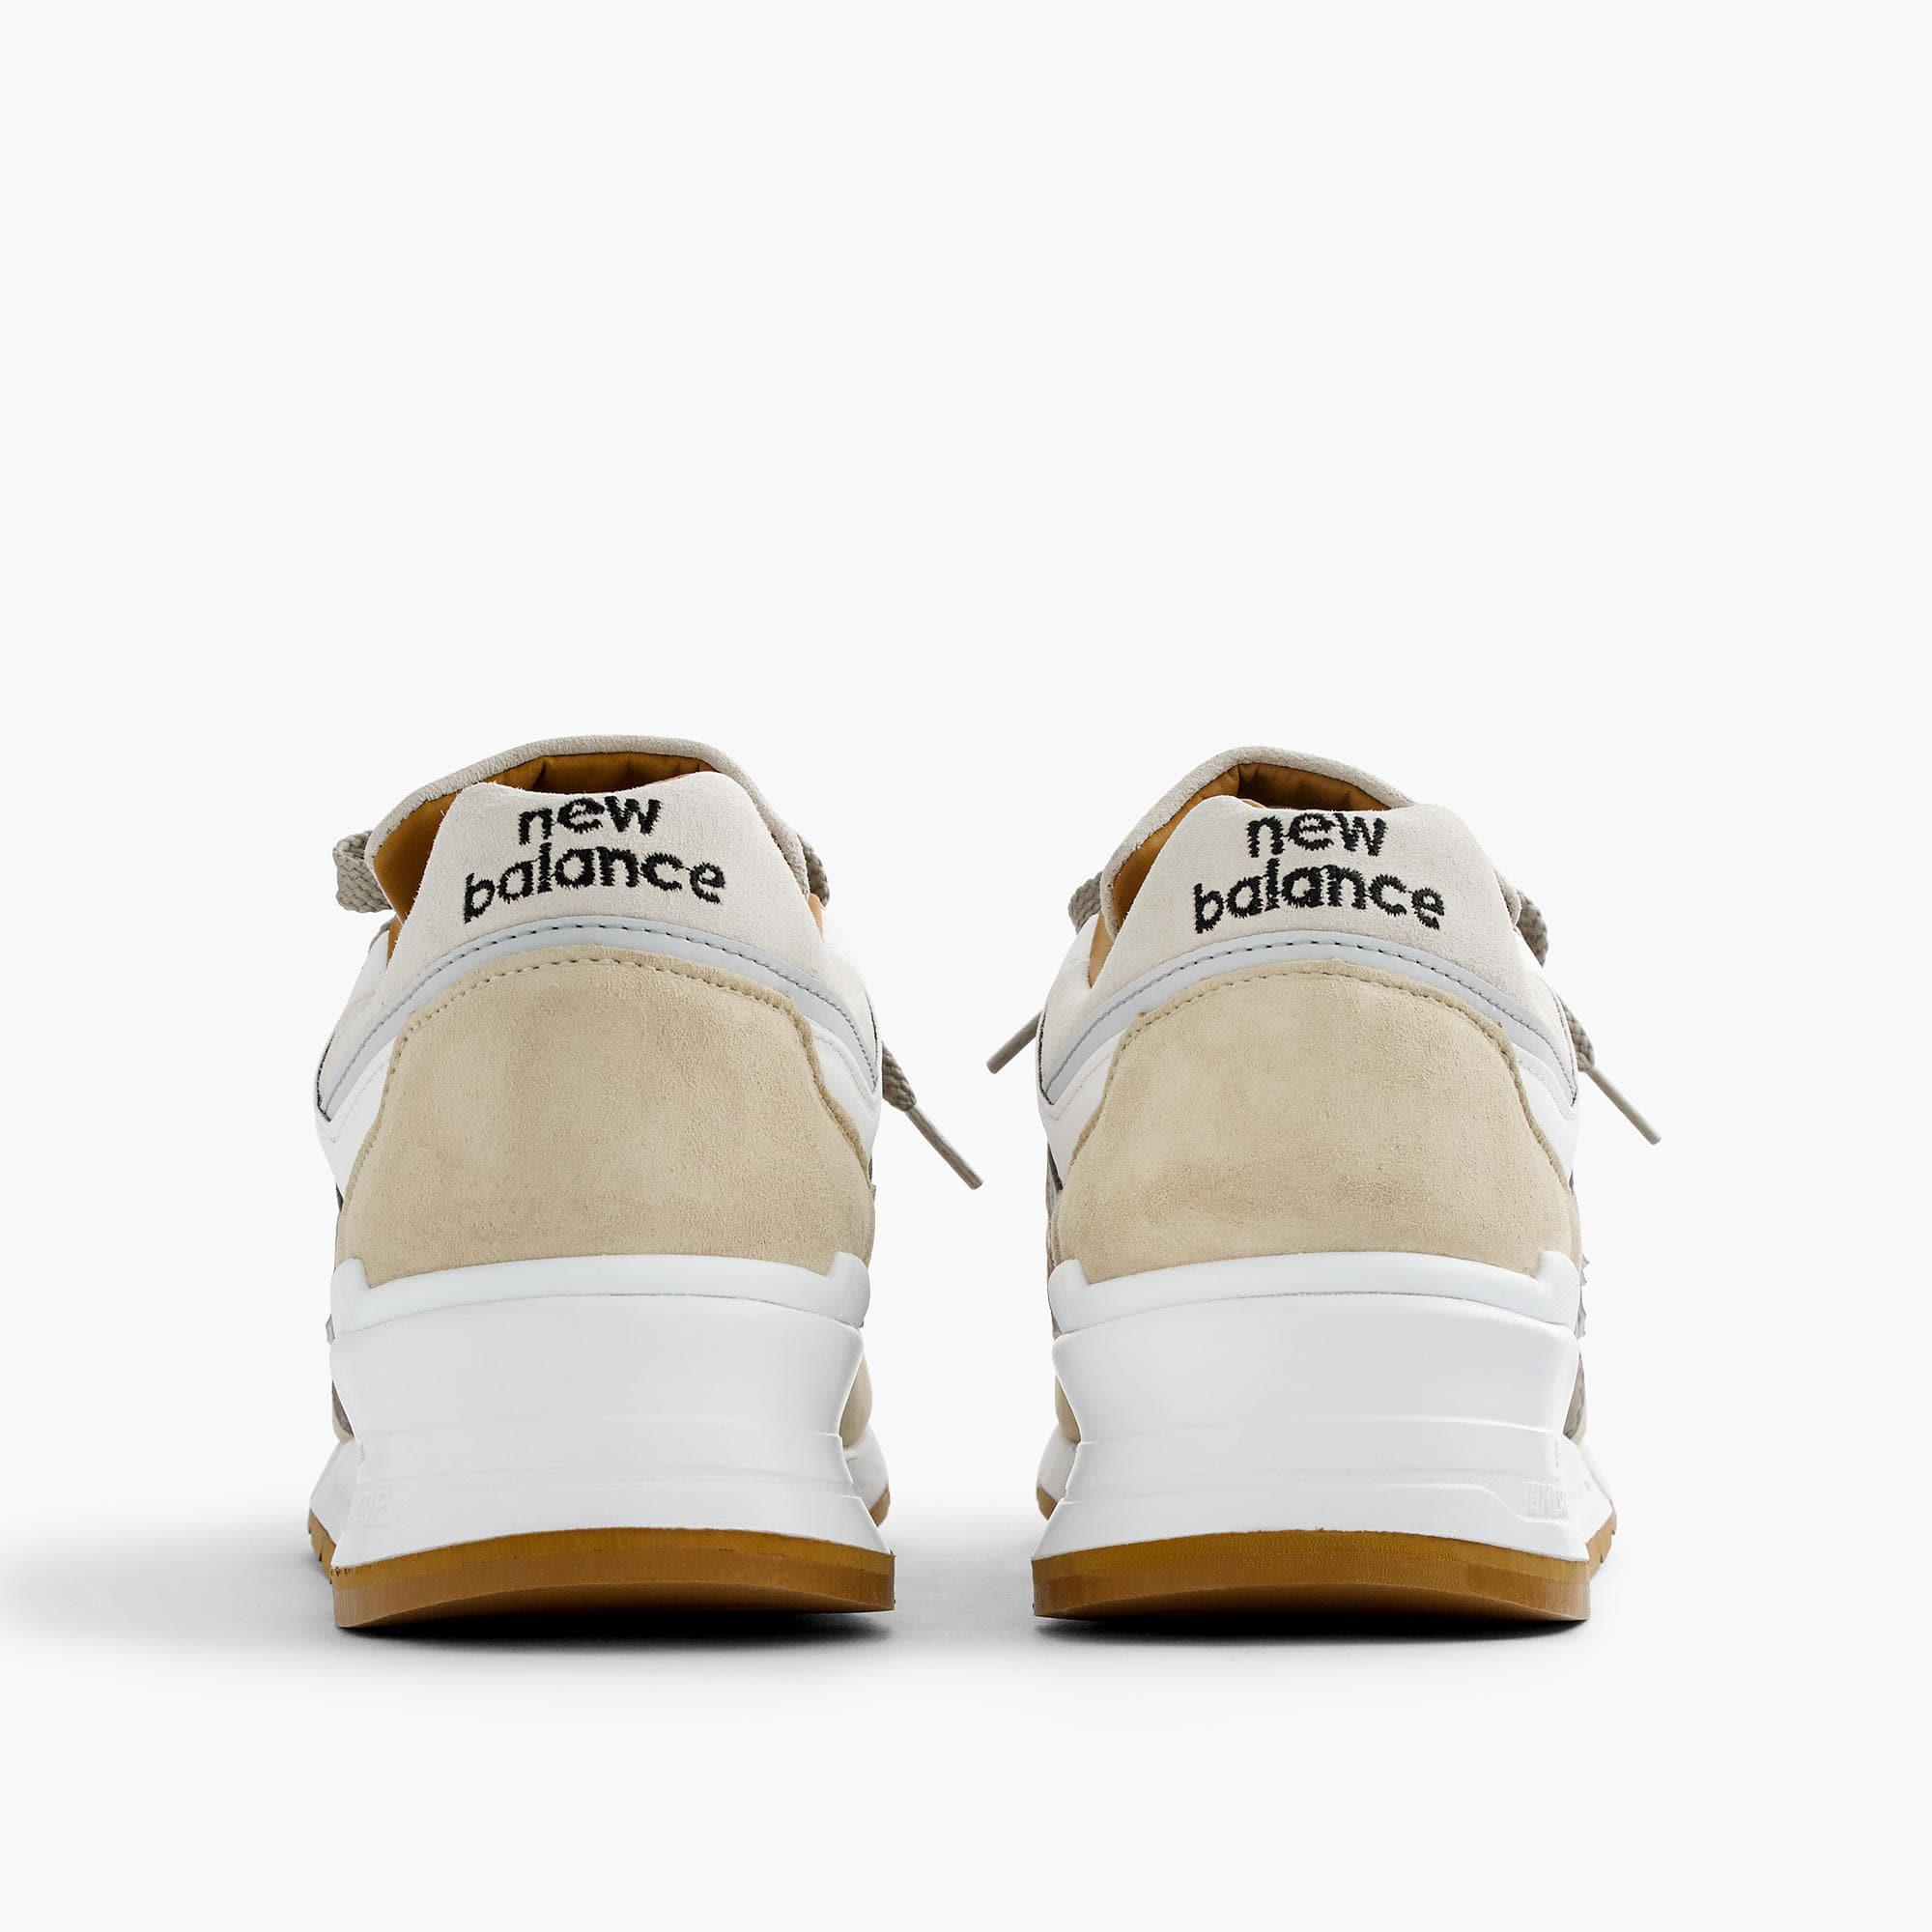 separation shoes 448e9 fa236 J.Crew Limited-edition New Balance 997 Cortado Sneakers for ...